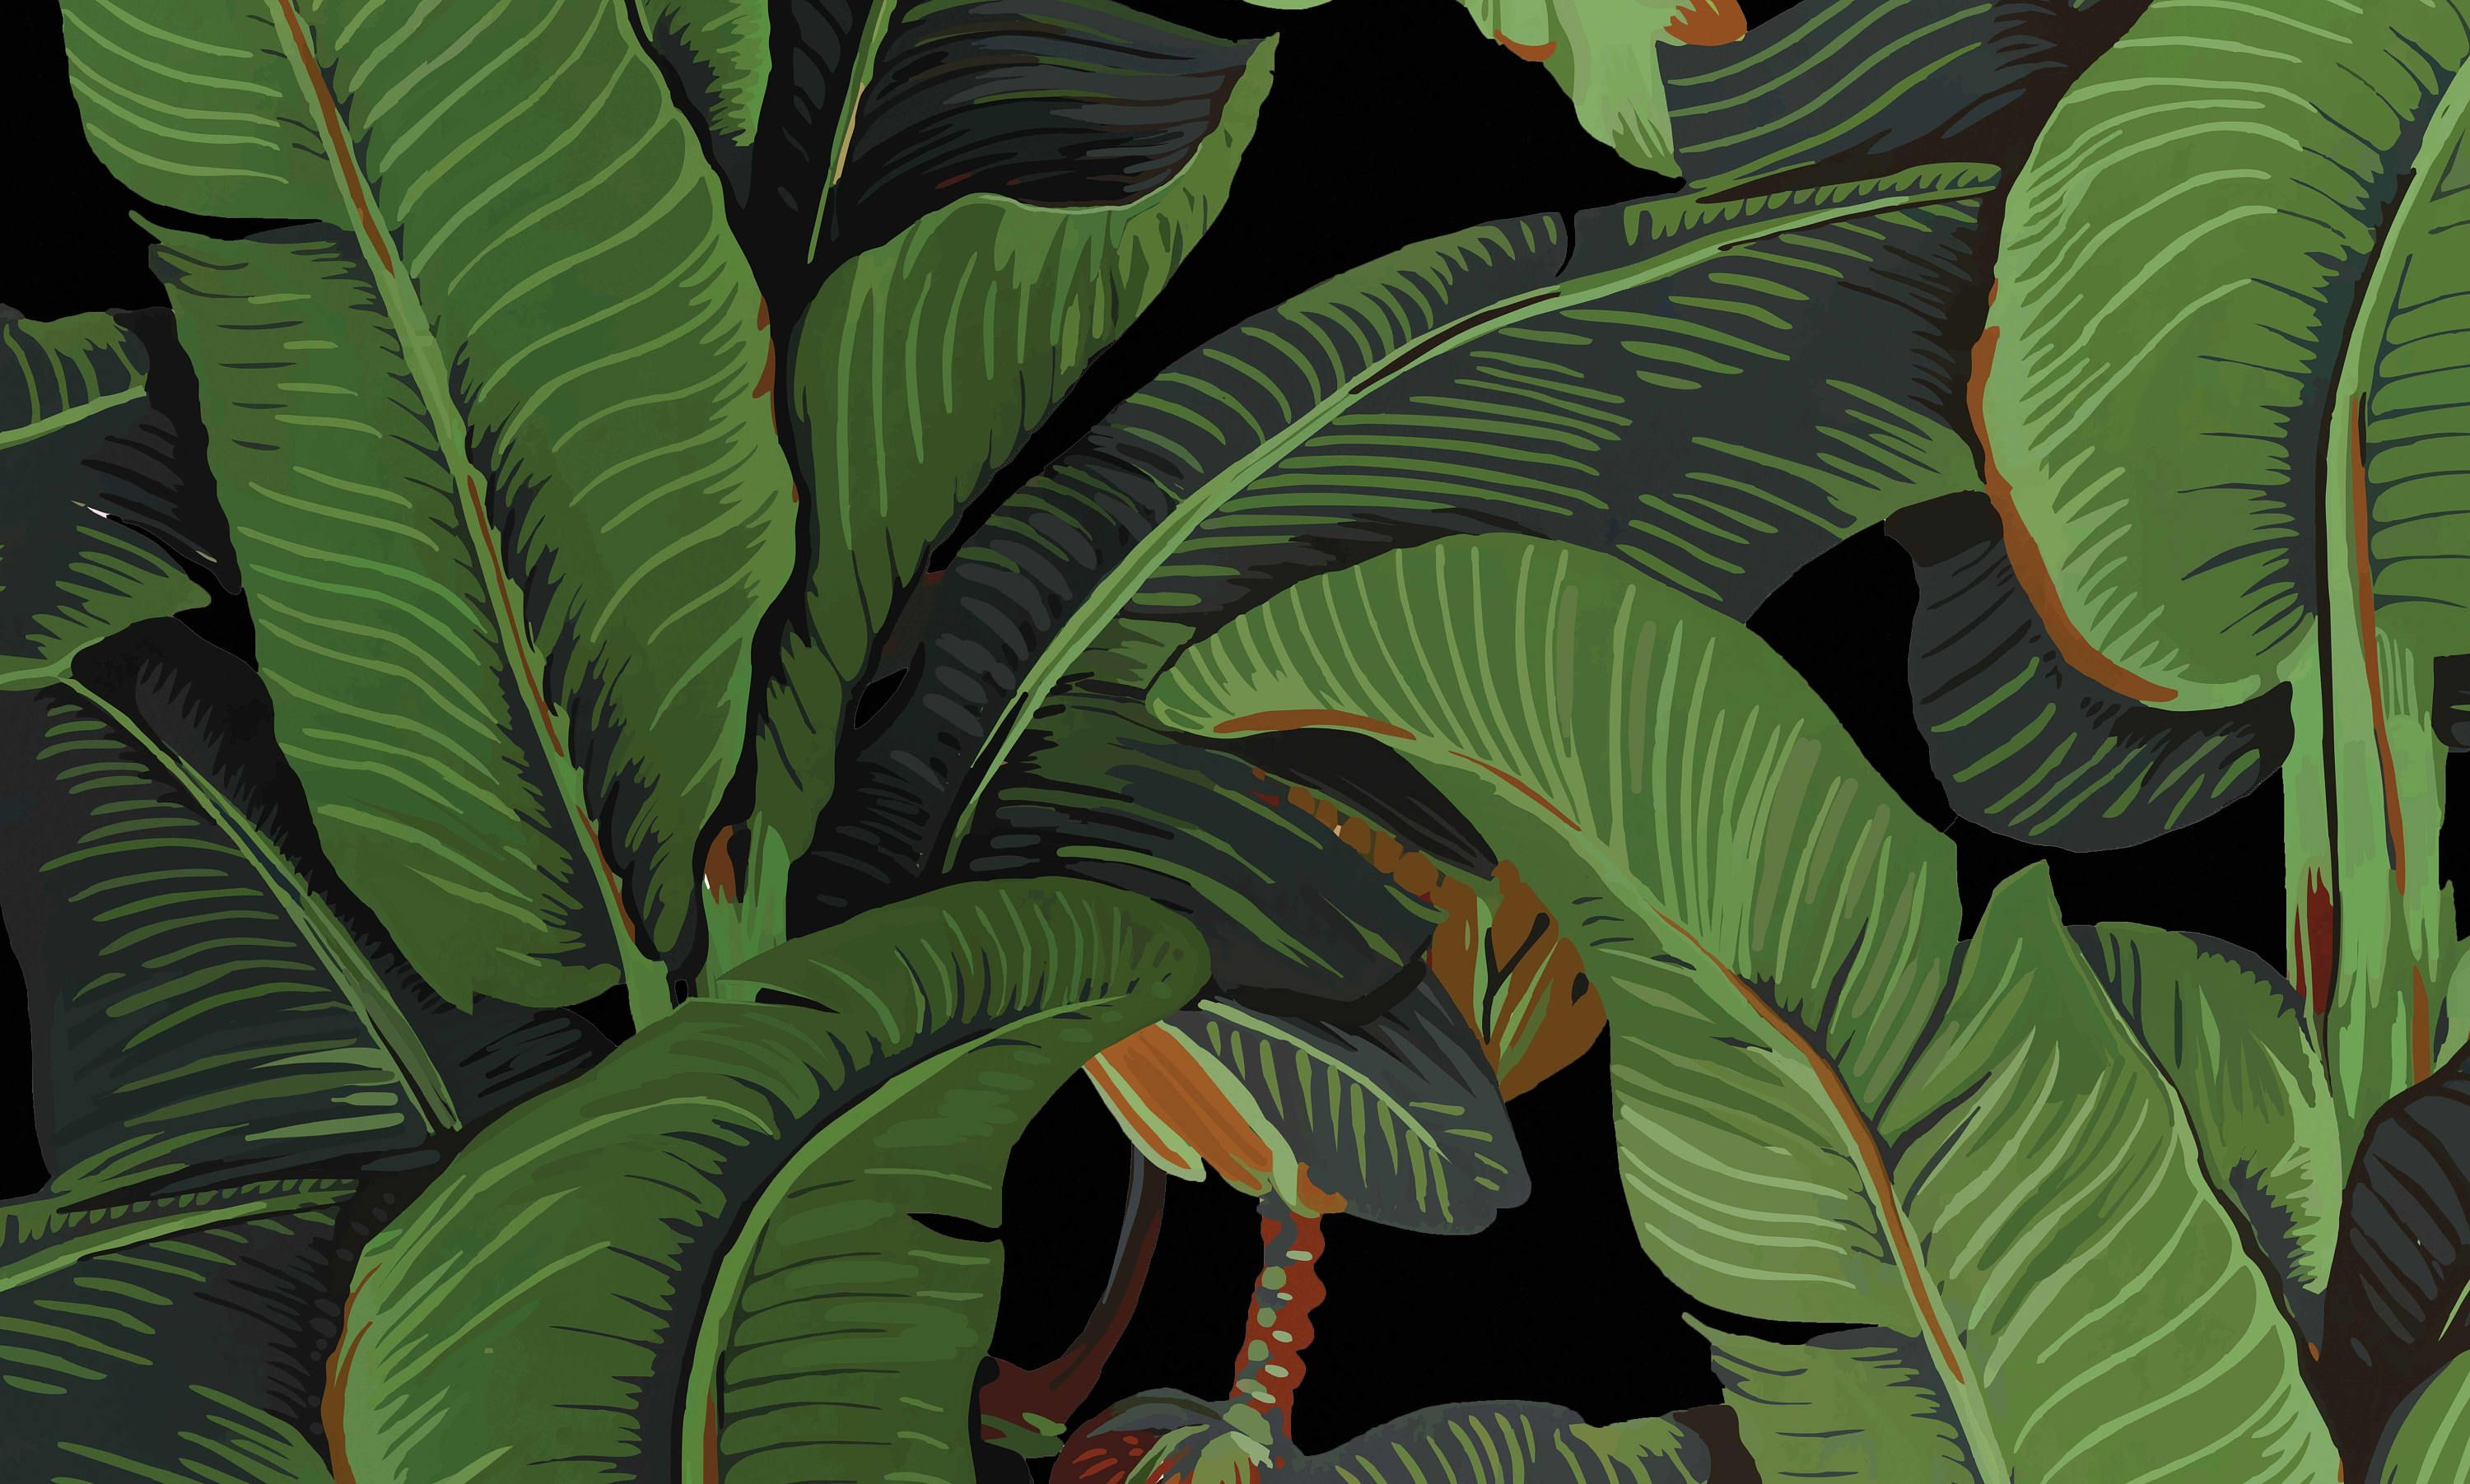 Black banano leaf wallpaper Black Banana Leaves Banana